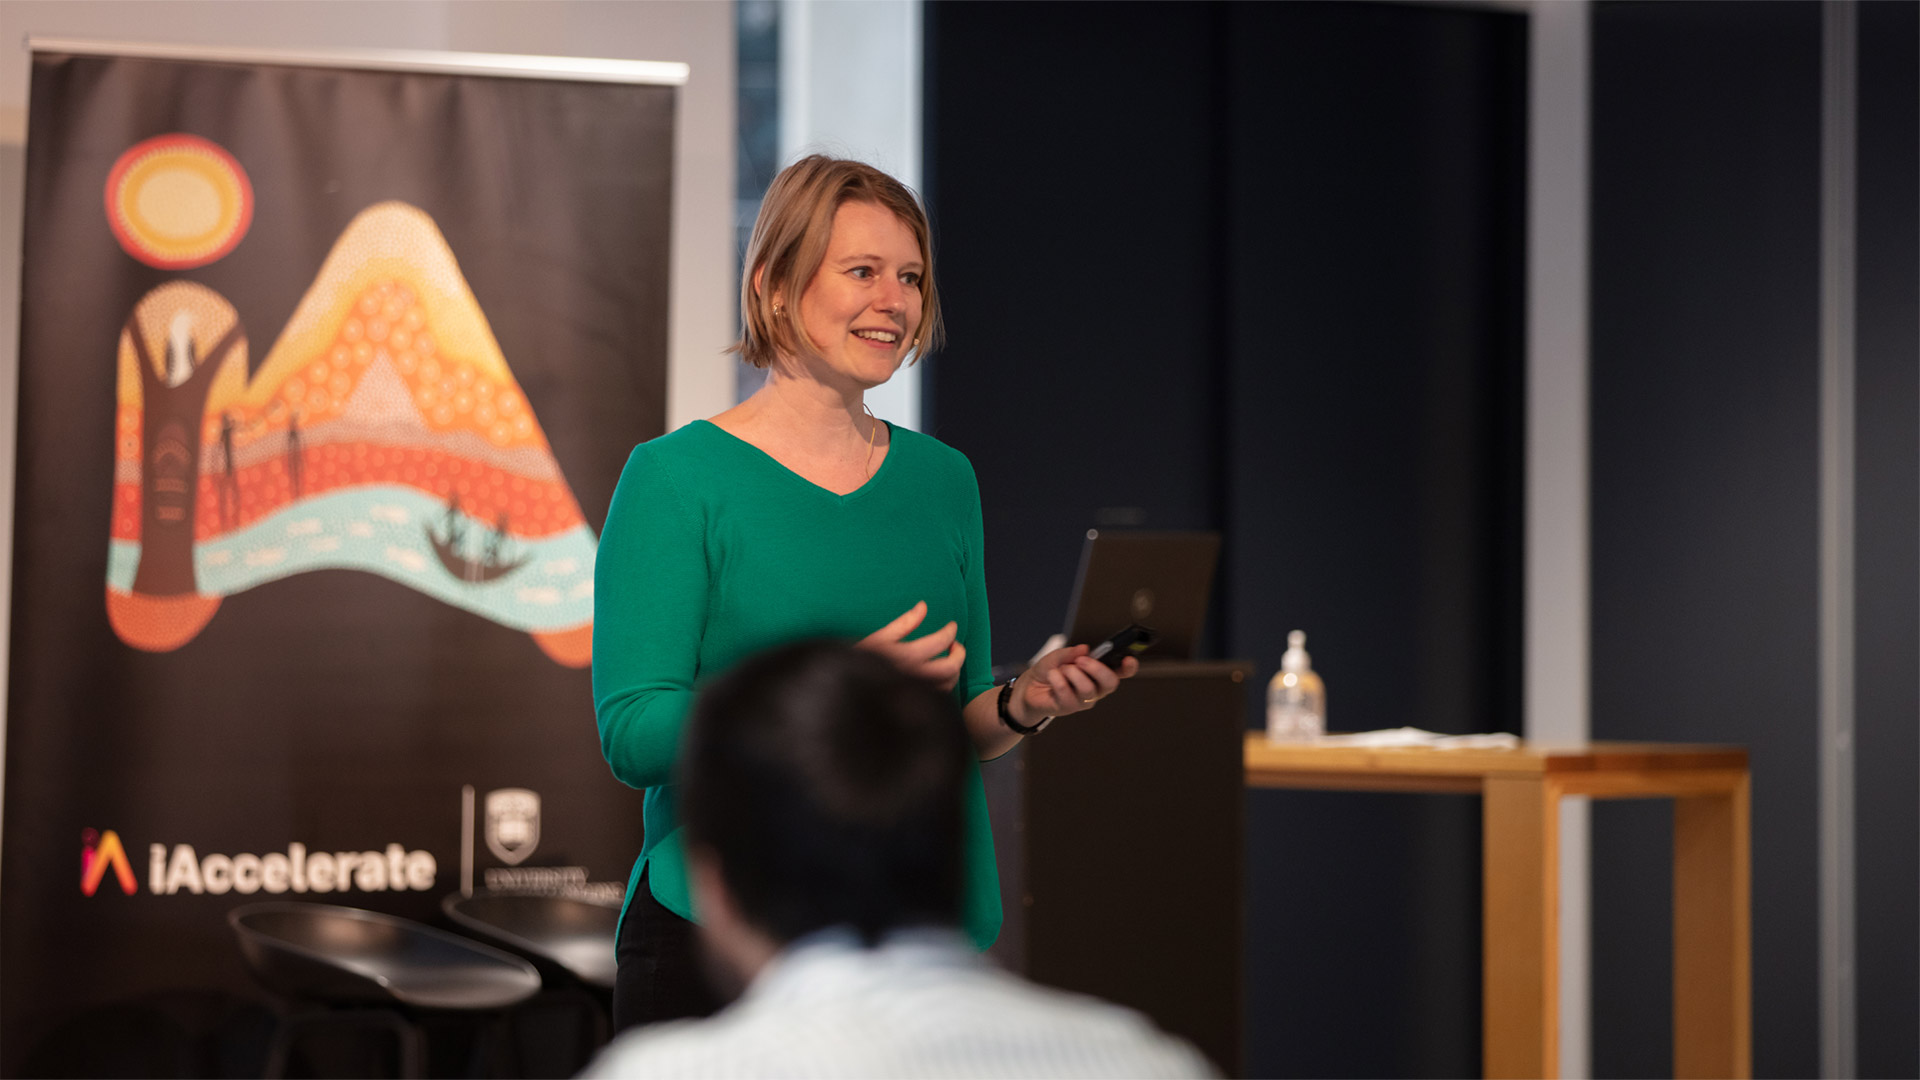 iAccelerate Activate program with Sabine Straver, Educate Program Manager, iAccelerate